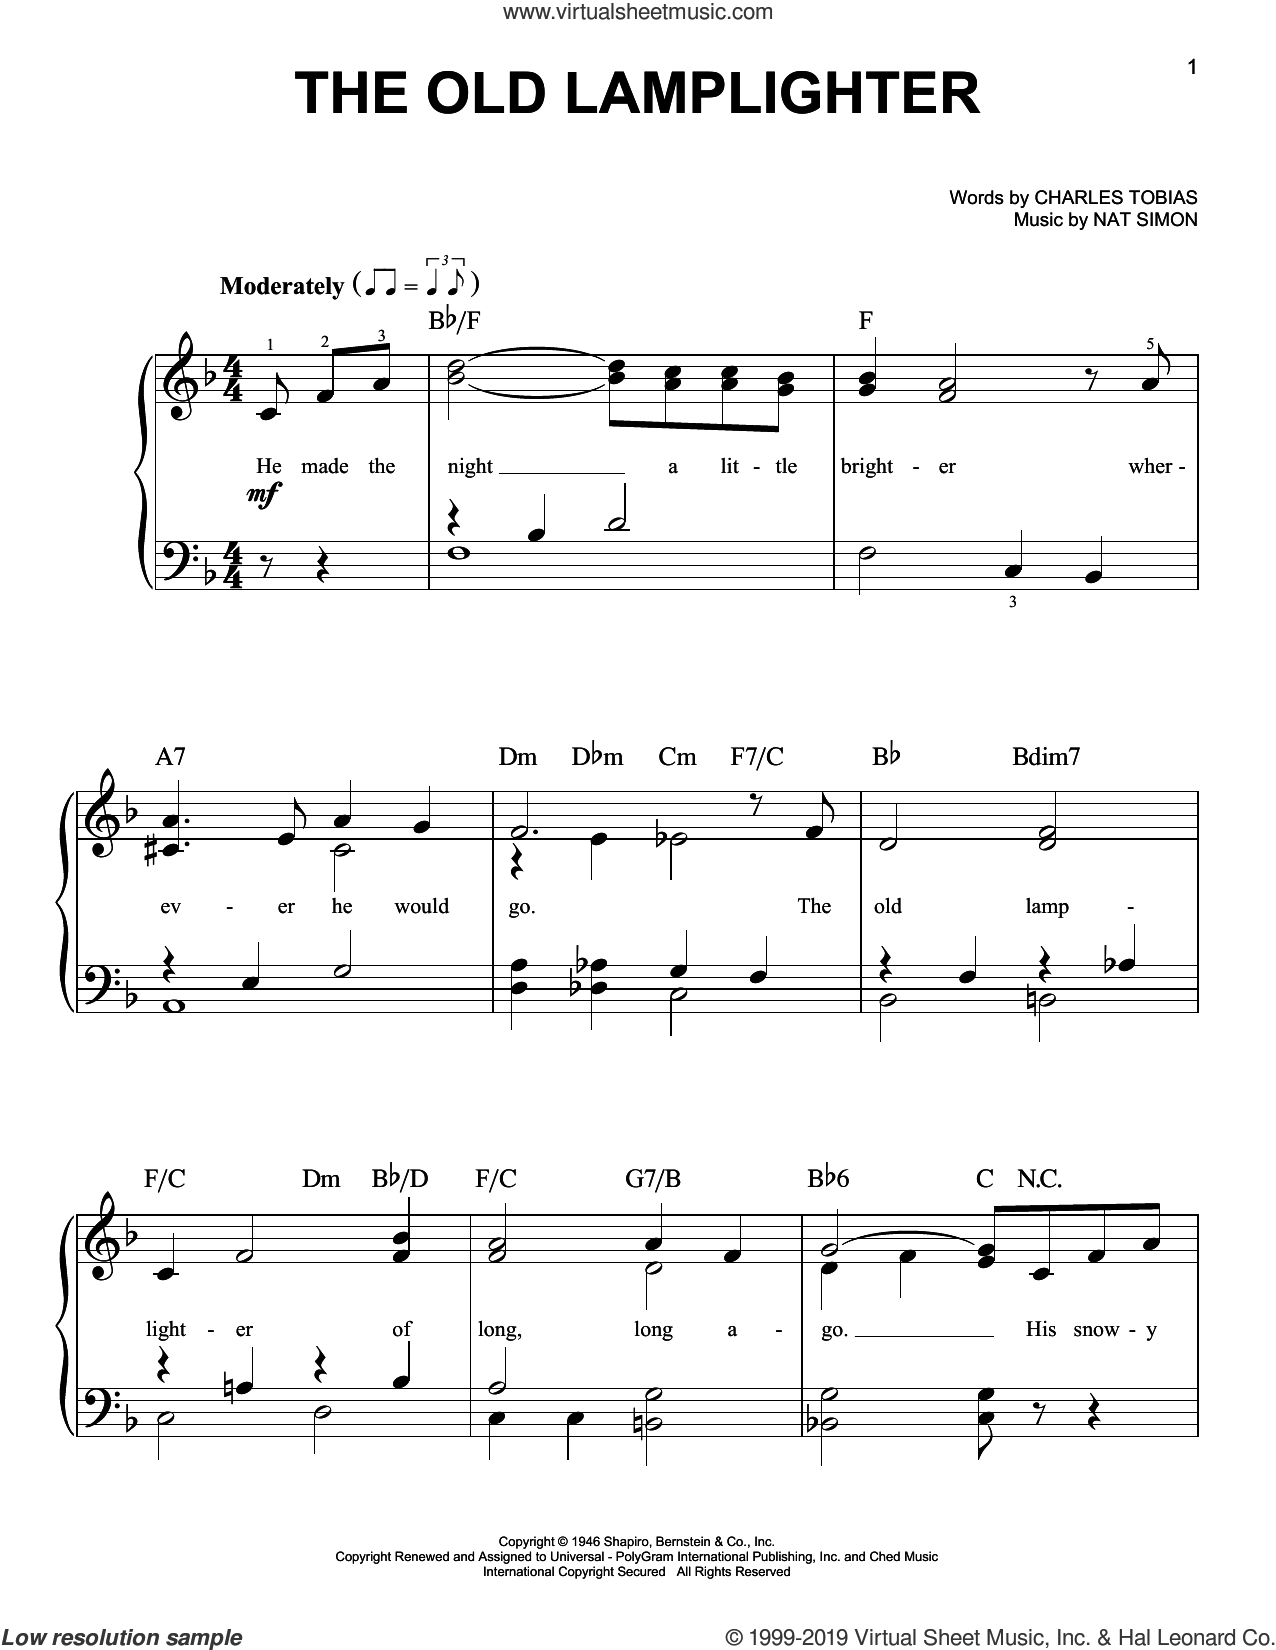 The Old Lamplighter sheet music for piano solo by The Browns, Charles Tobias and Nat Simon, easy skill level